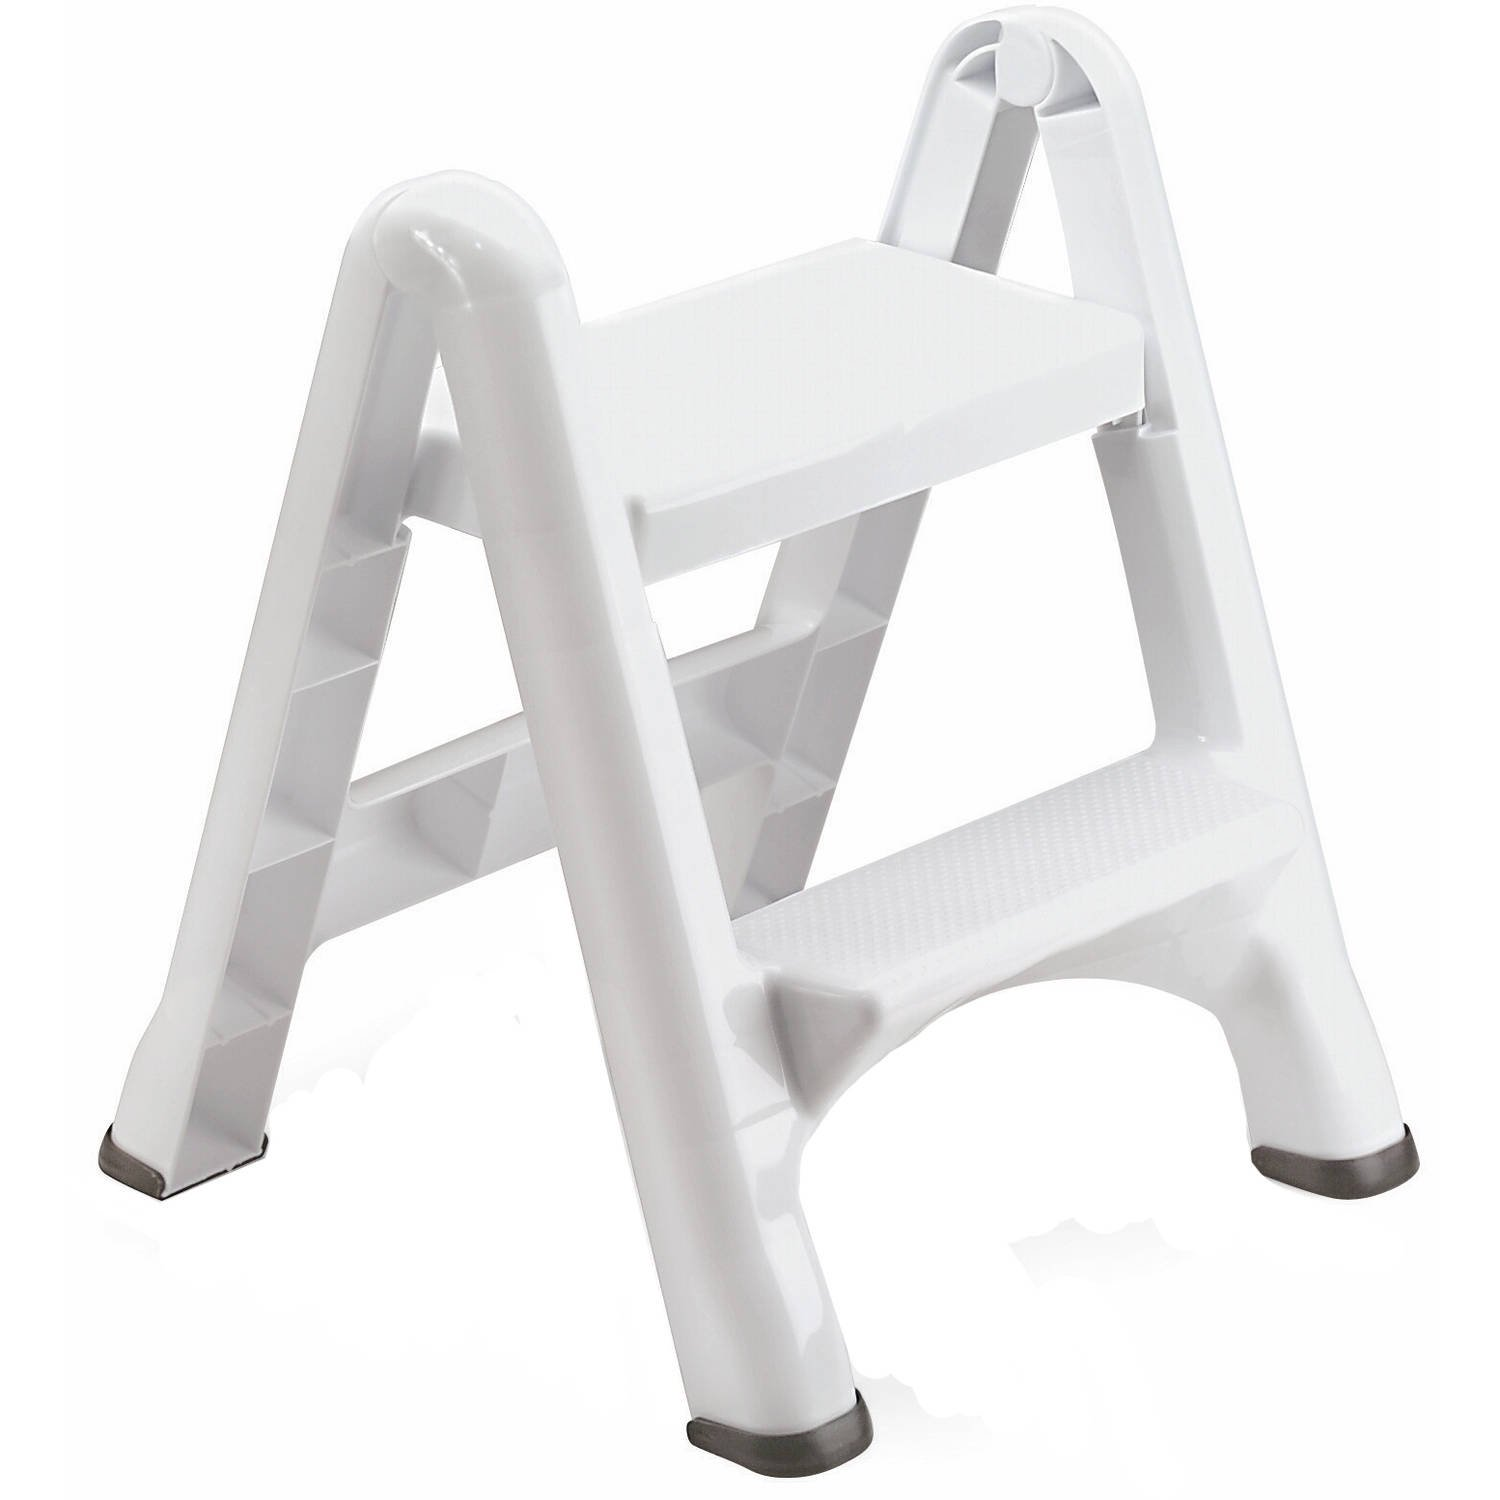 Rubbermaid Folding 2-Tier Step Stool  sc 1 st  Walmart & Rubbermaid Folding 2-Tier Step Stool - Walmart.com islam-shia.org